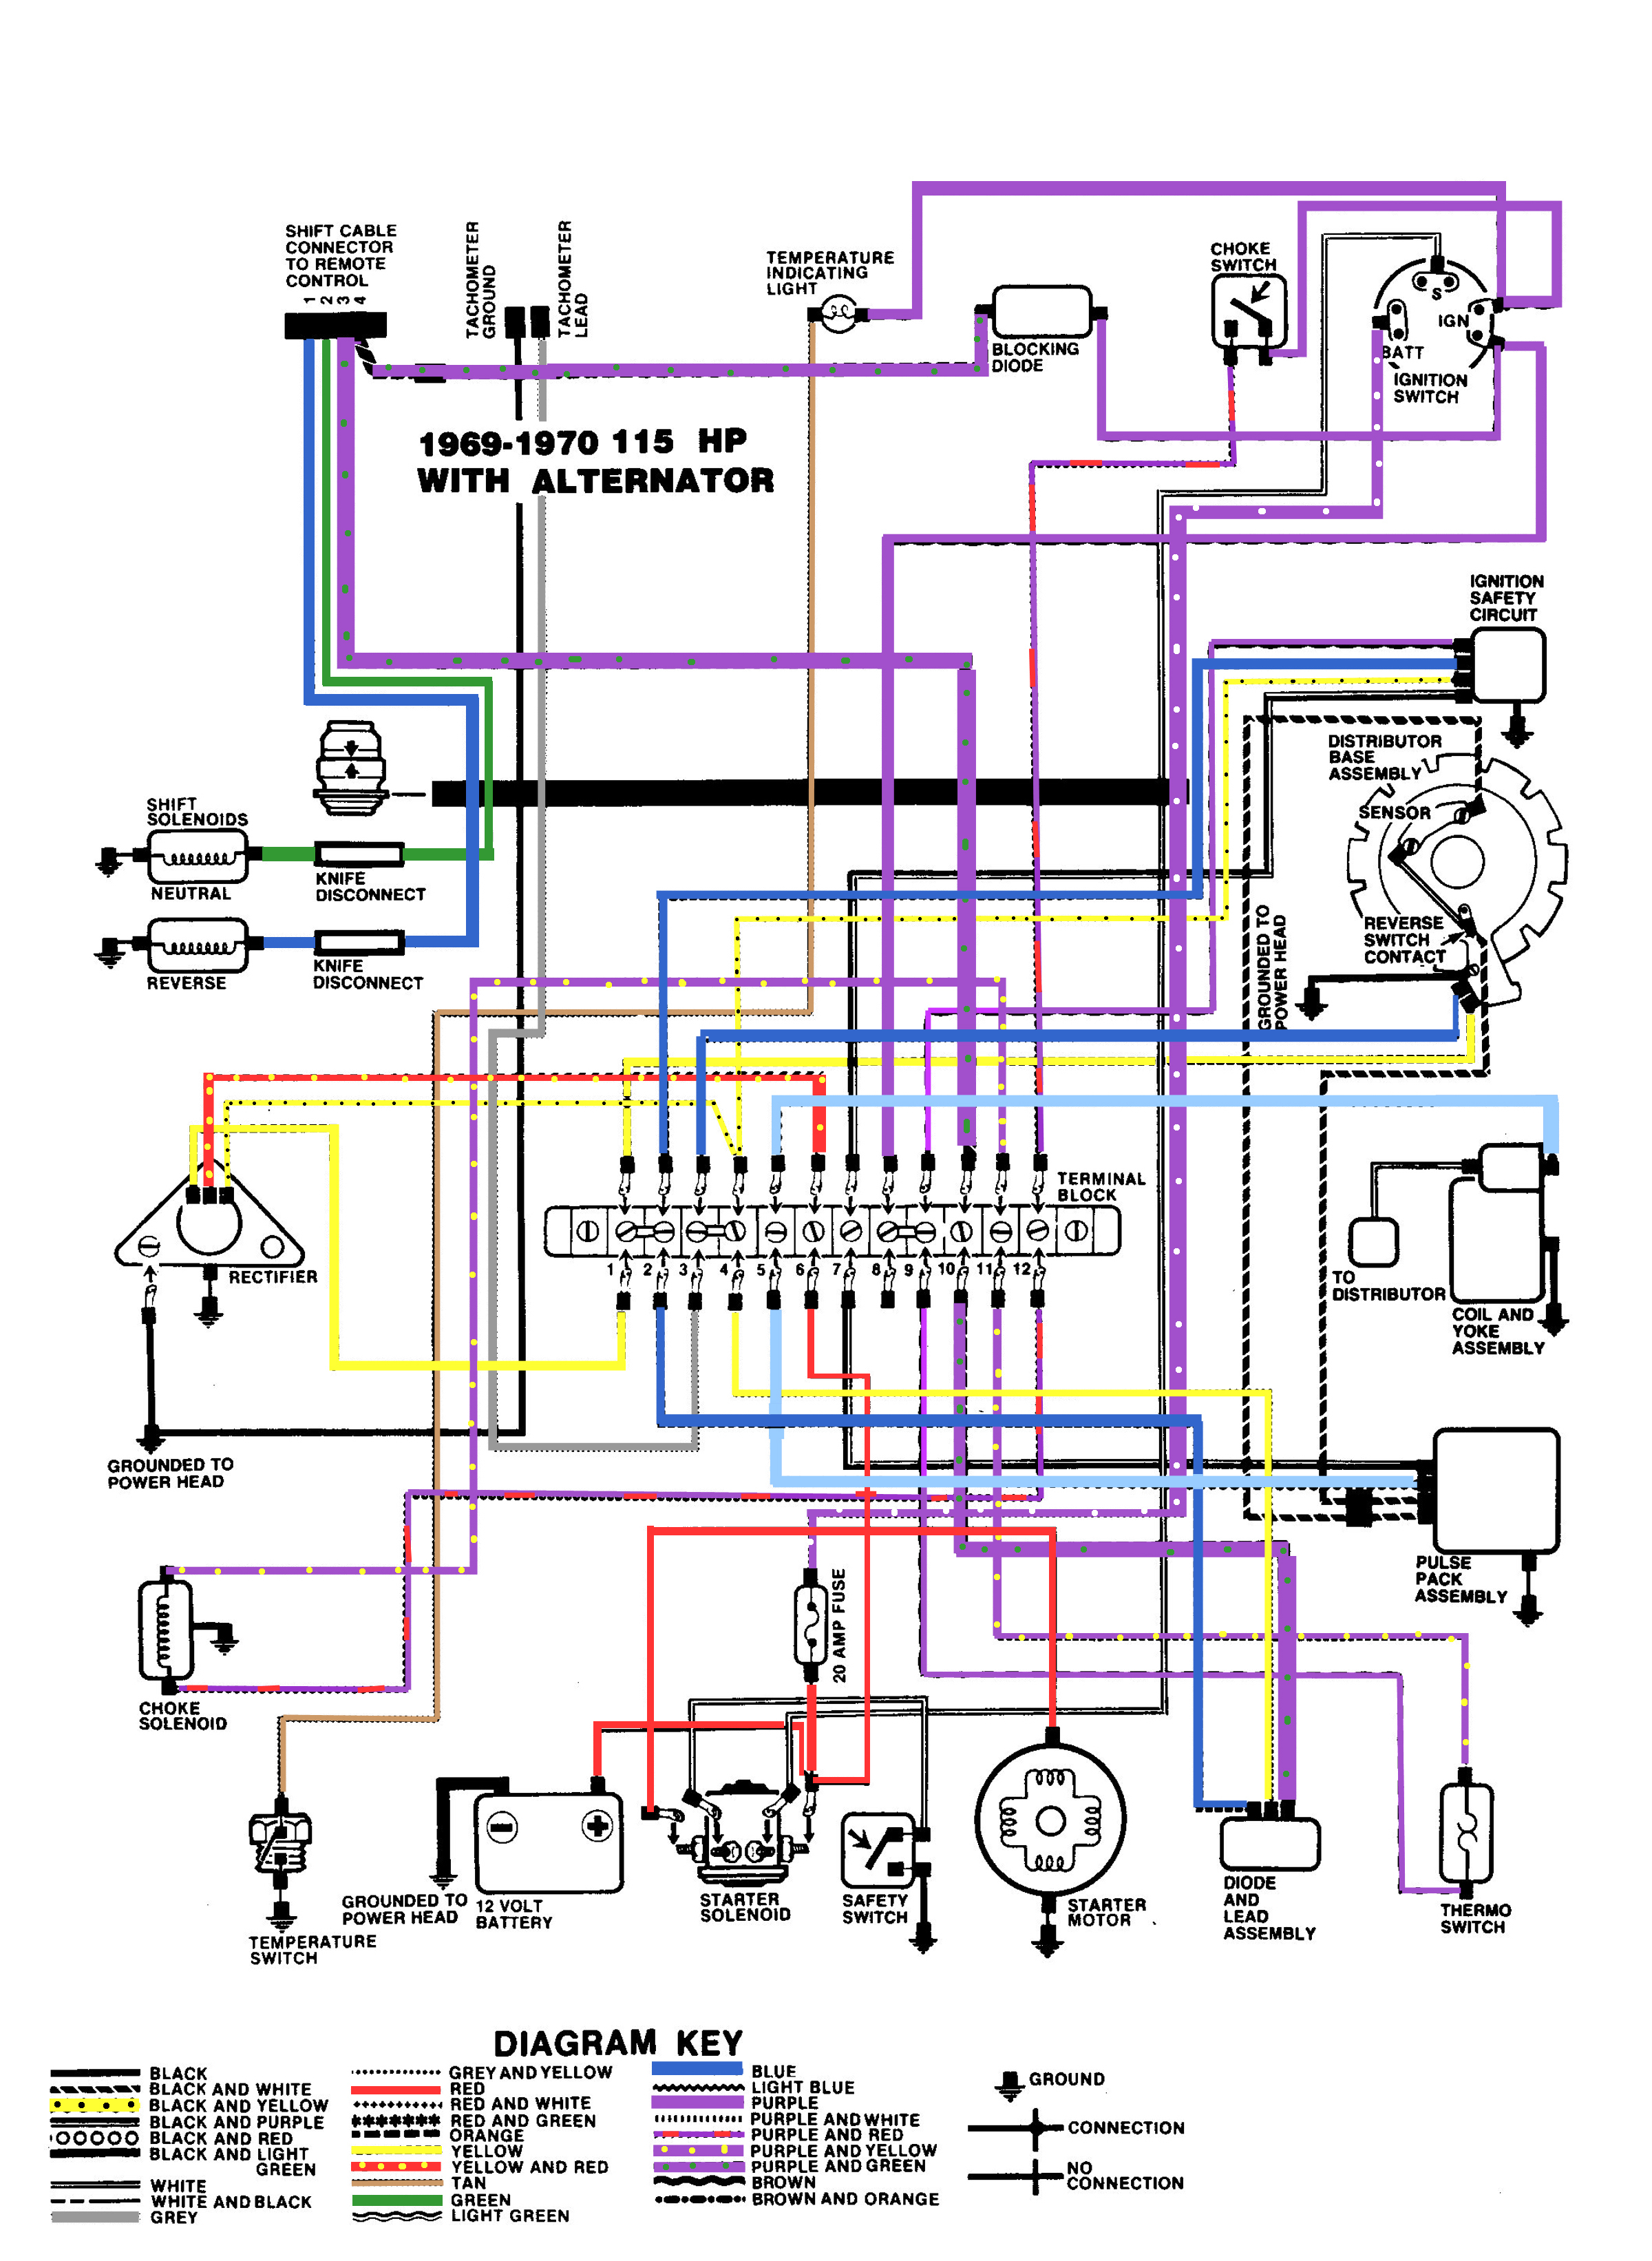 Omc Johnson Evinrude Ignition Switch Wiring Diagram | Wiring Diagram - Johnson Ignition Switch Wiring Diagram